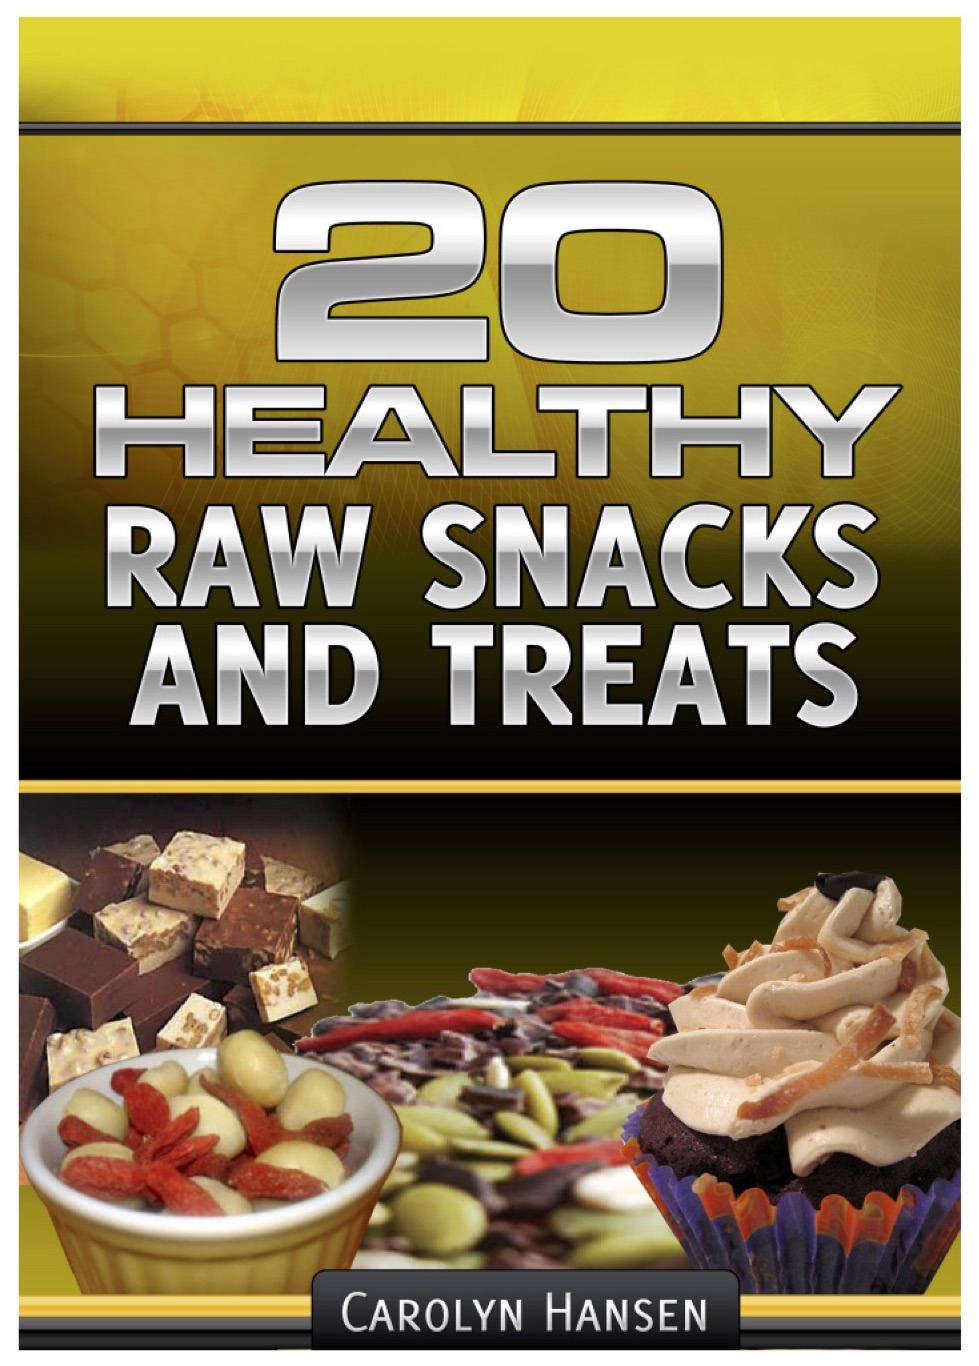 Free Healthy Recipes Book